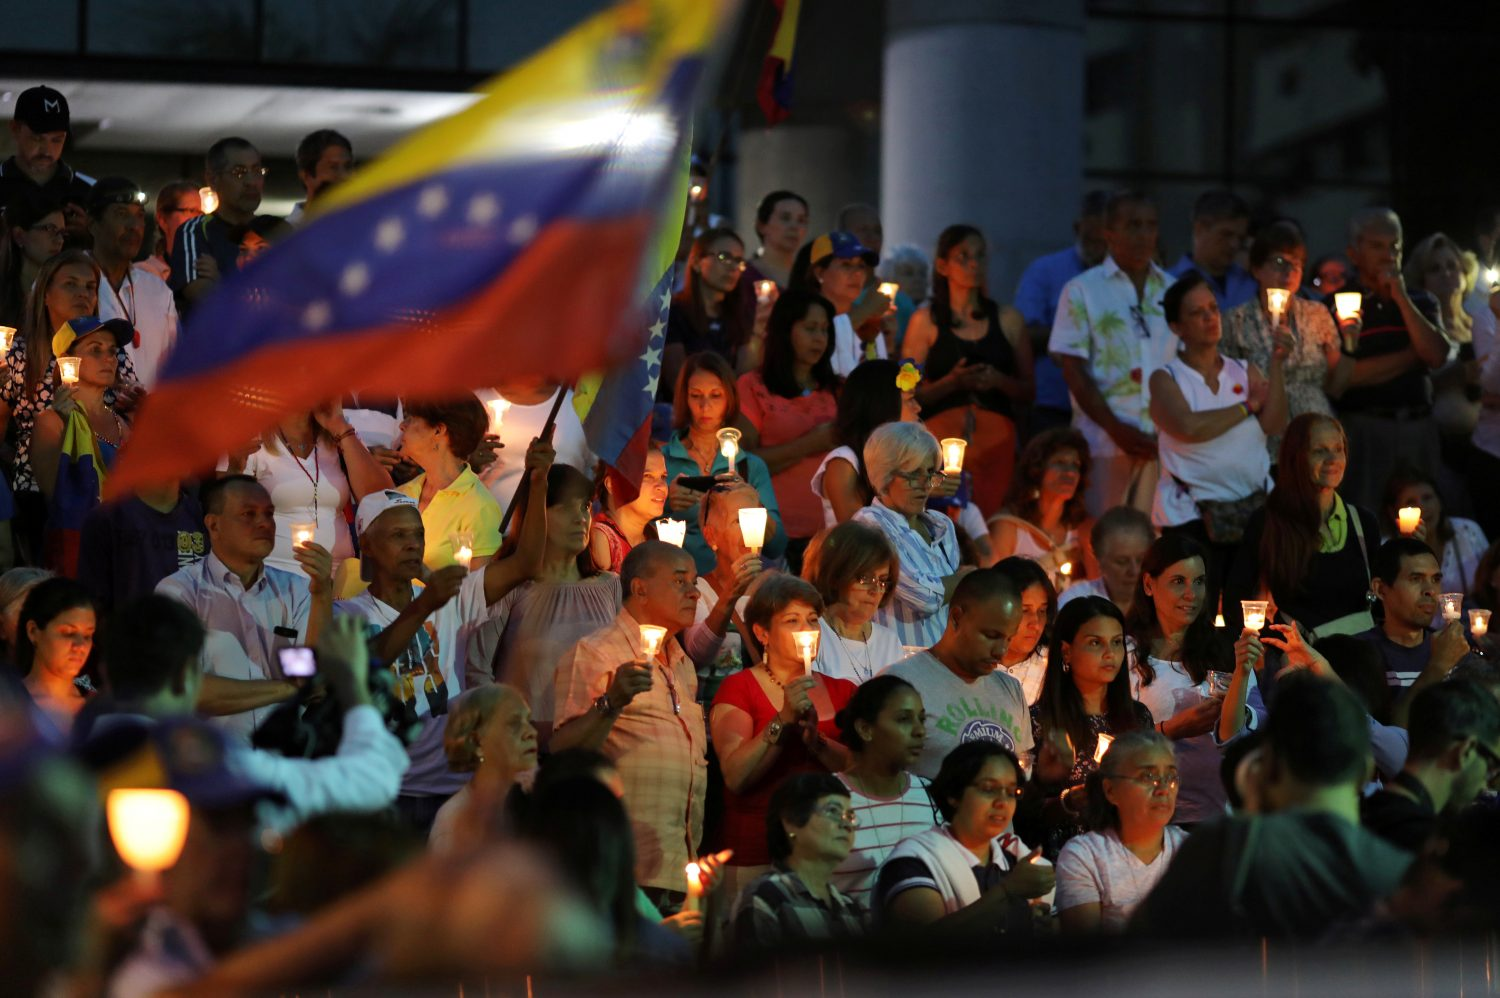 People hold lit candles and Venezuelan flags while participating in a candlelight vigil held for victims of recent violence in Caracas, Venezuela May 5, 2019. REUTERS/Manaure Quintero